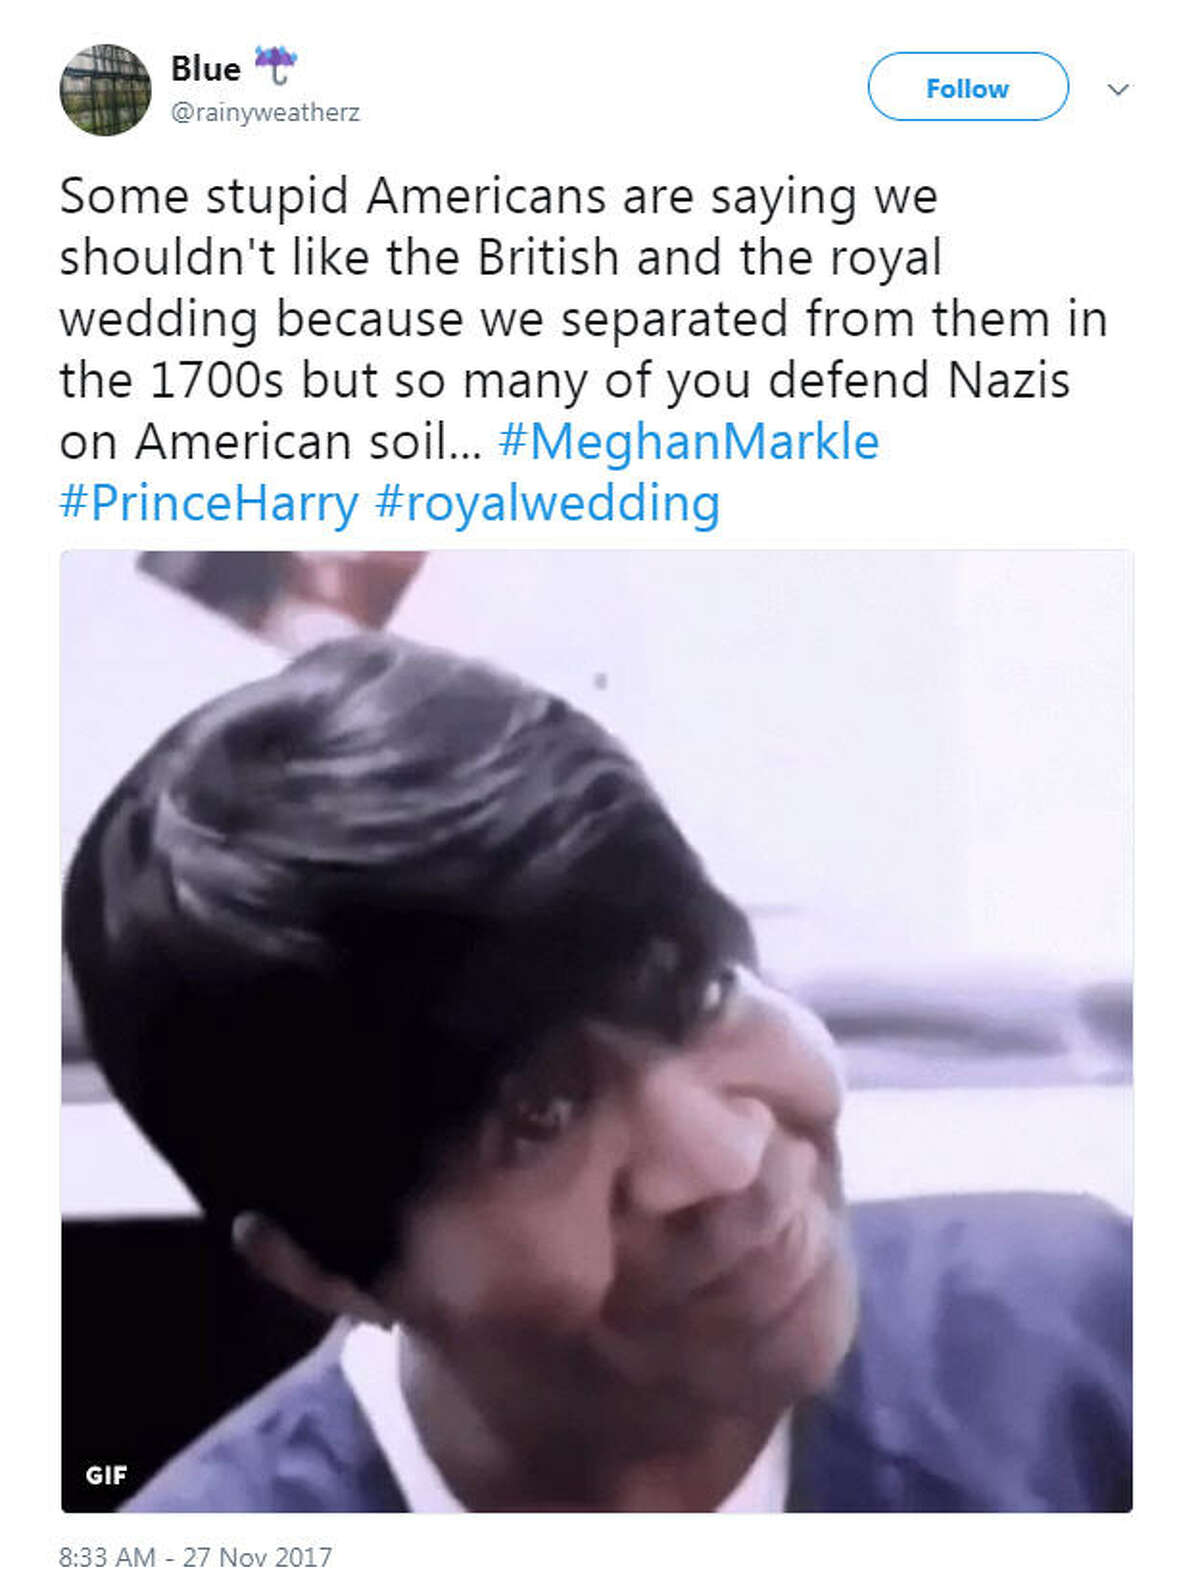 """""""Some stupid Americans are saying we shouldn't like the British and the royal wedding because we separated from them in the 1700s but so many of you defend Nazis on American soil..."""" Source: Twitter"""